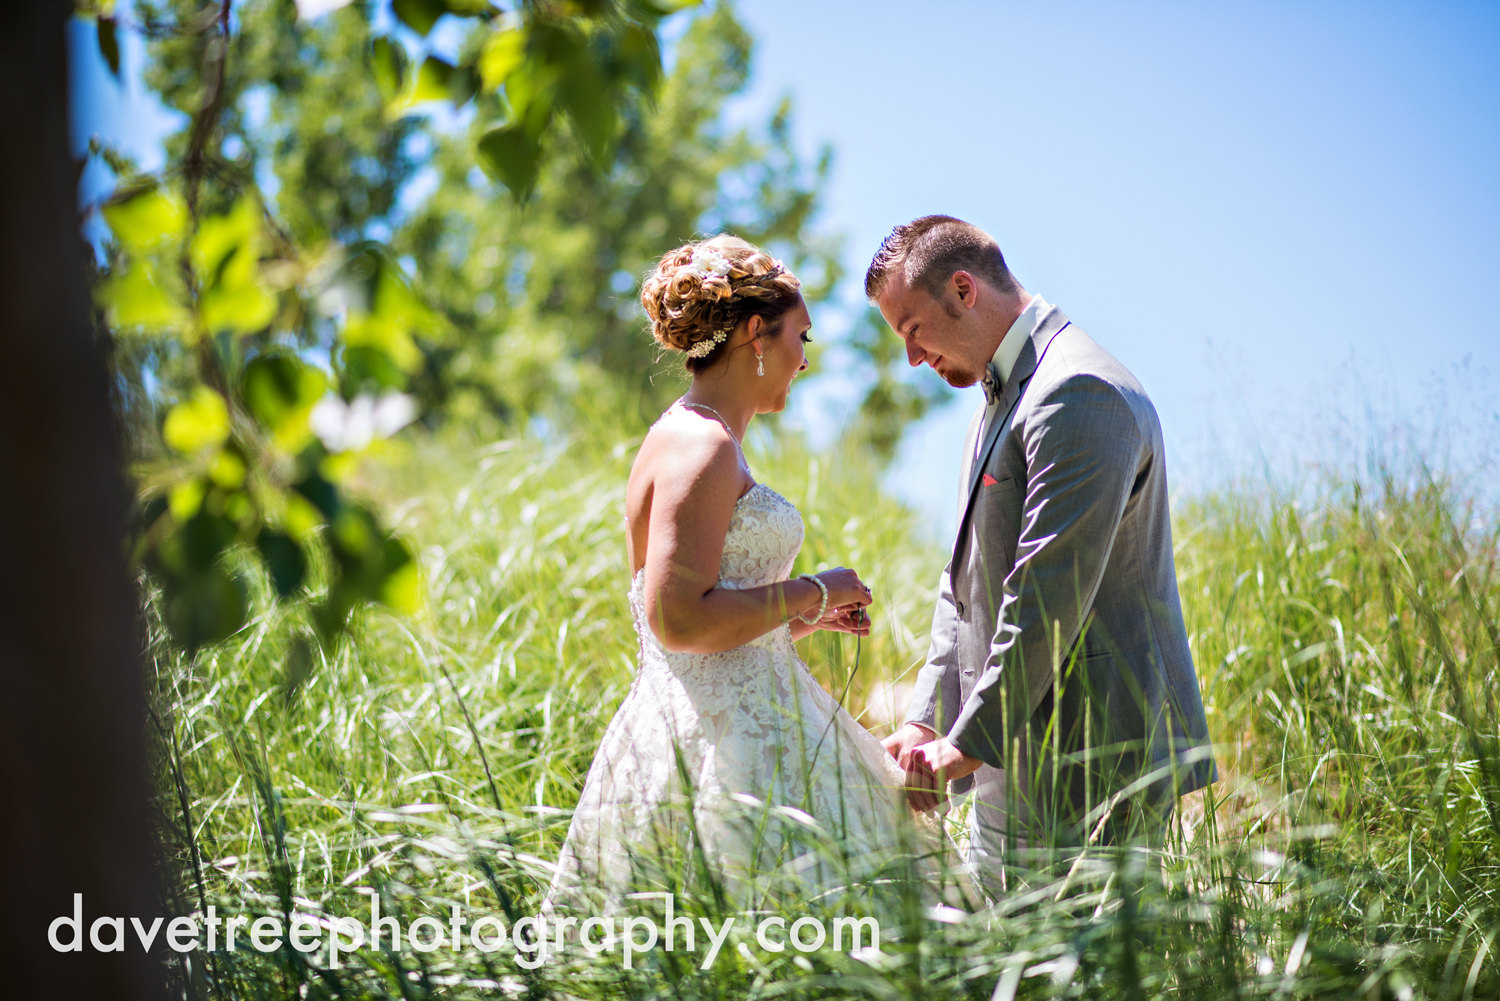 veranda_wedding_photographer_st_joseph_wedding_140.jpg